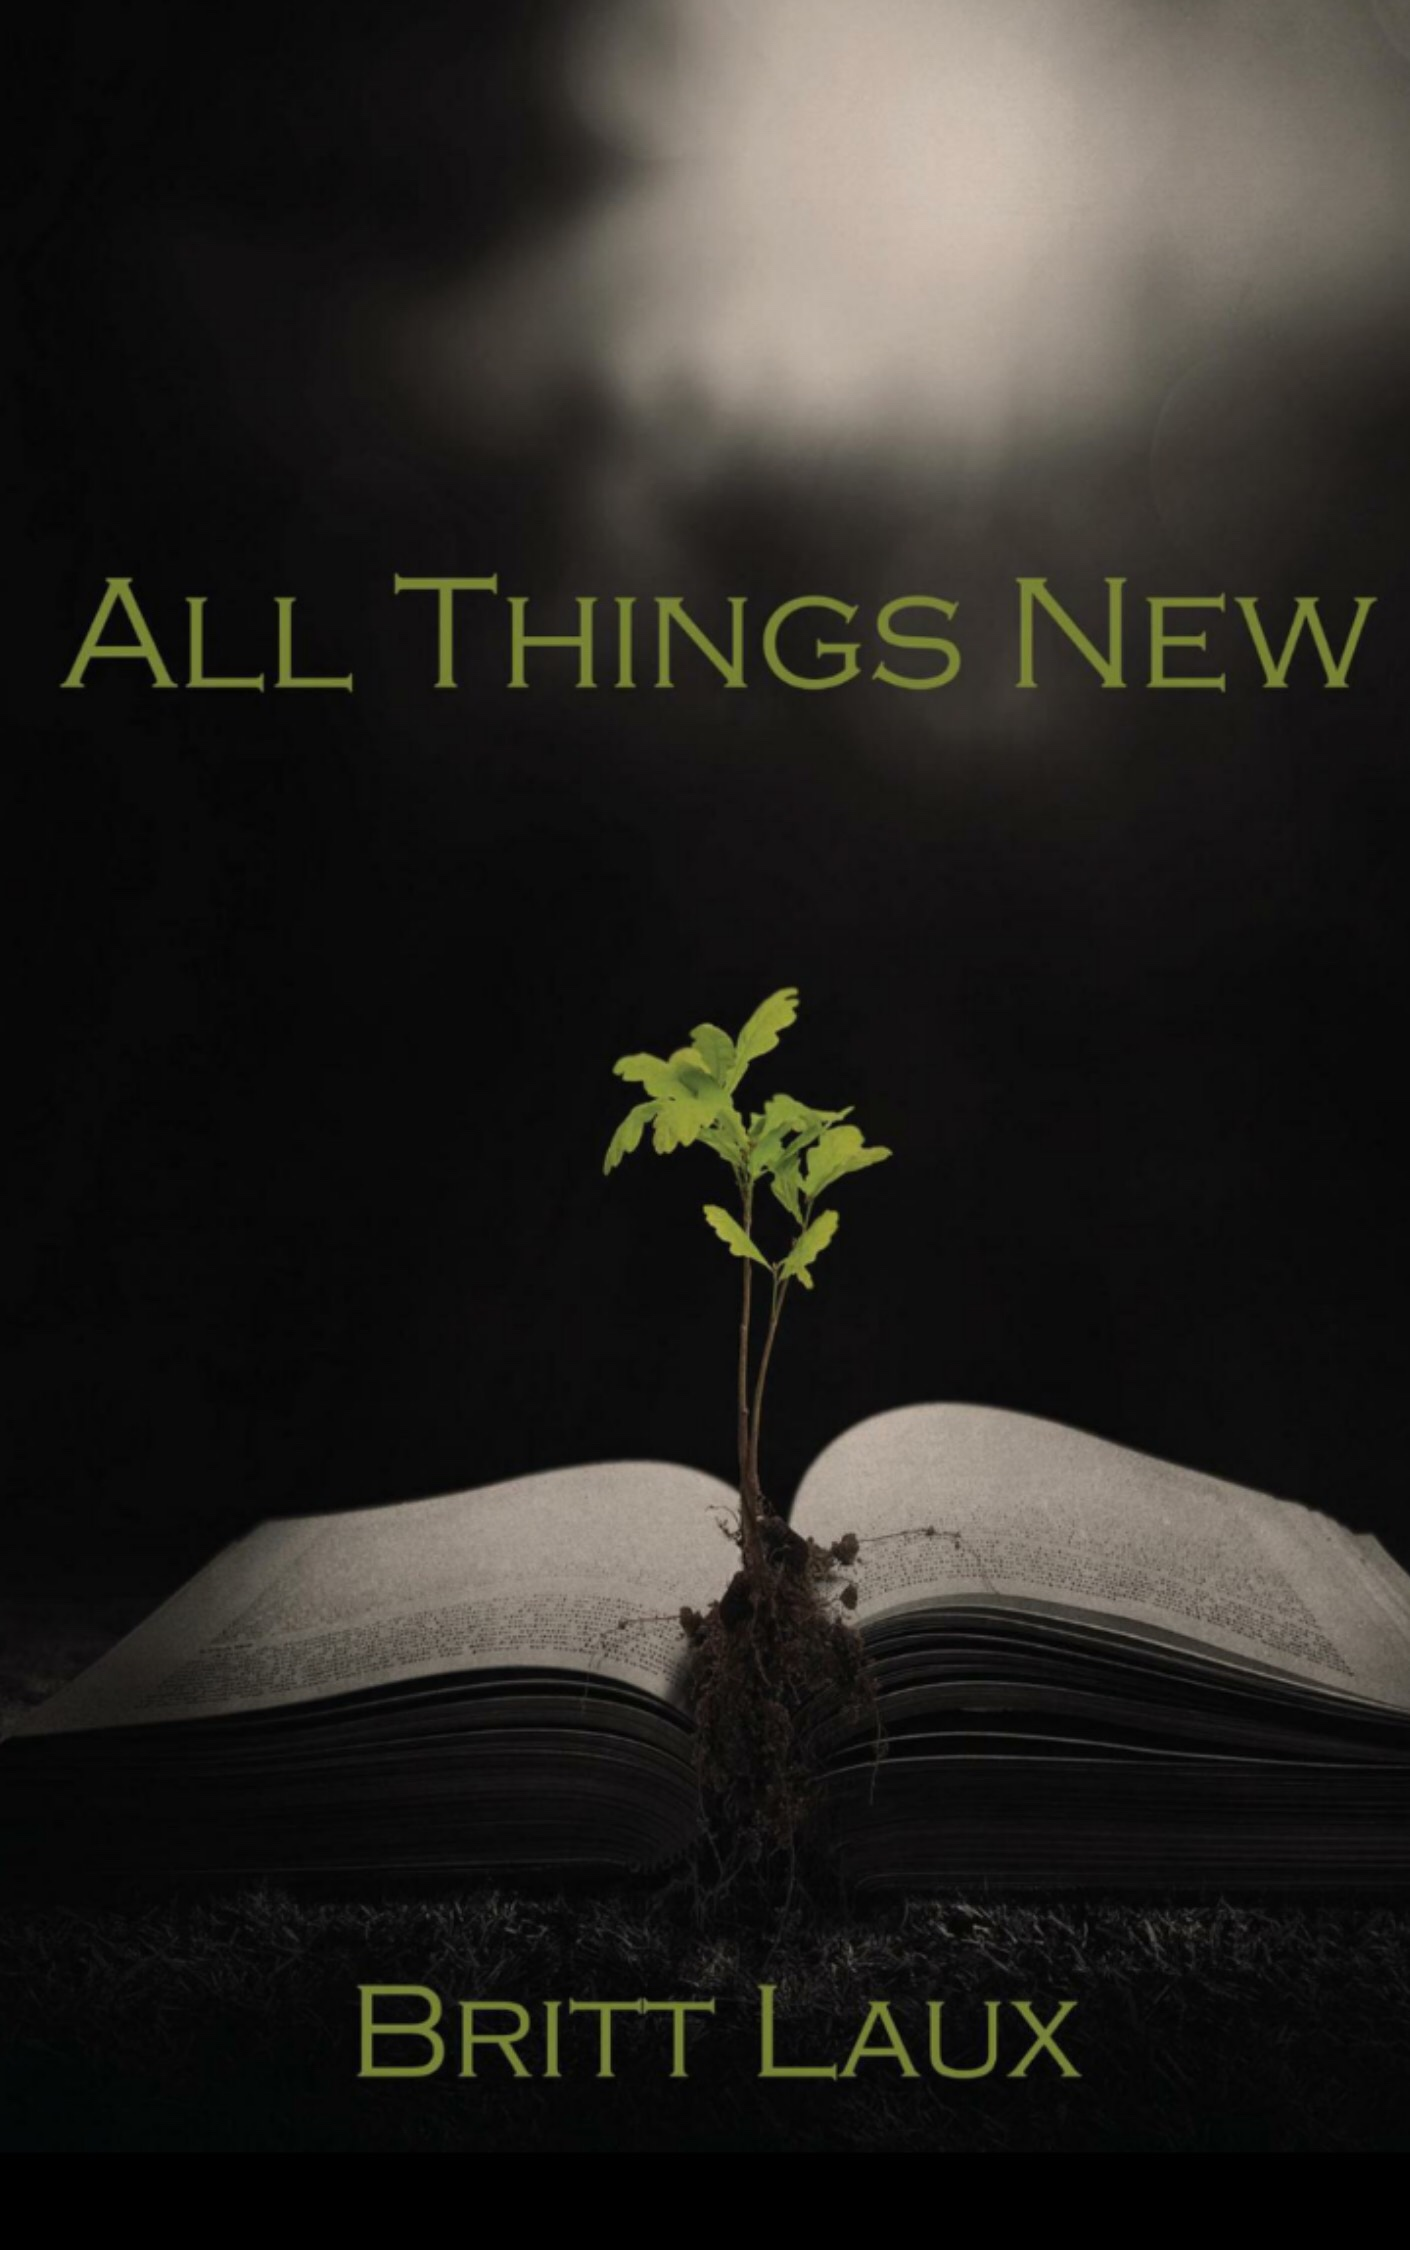 All things new by Britt Laux